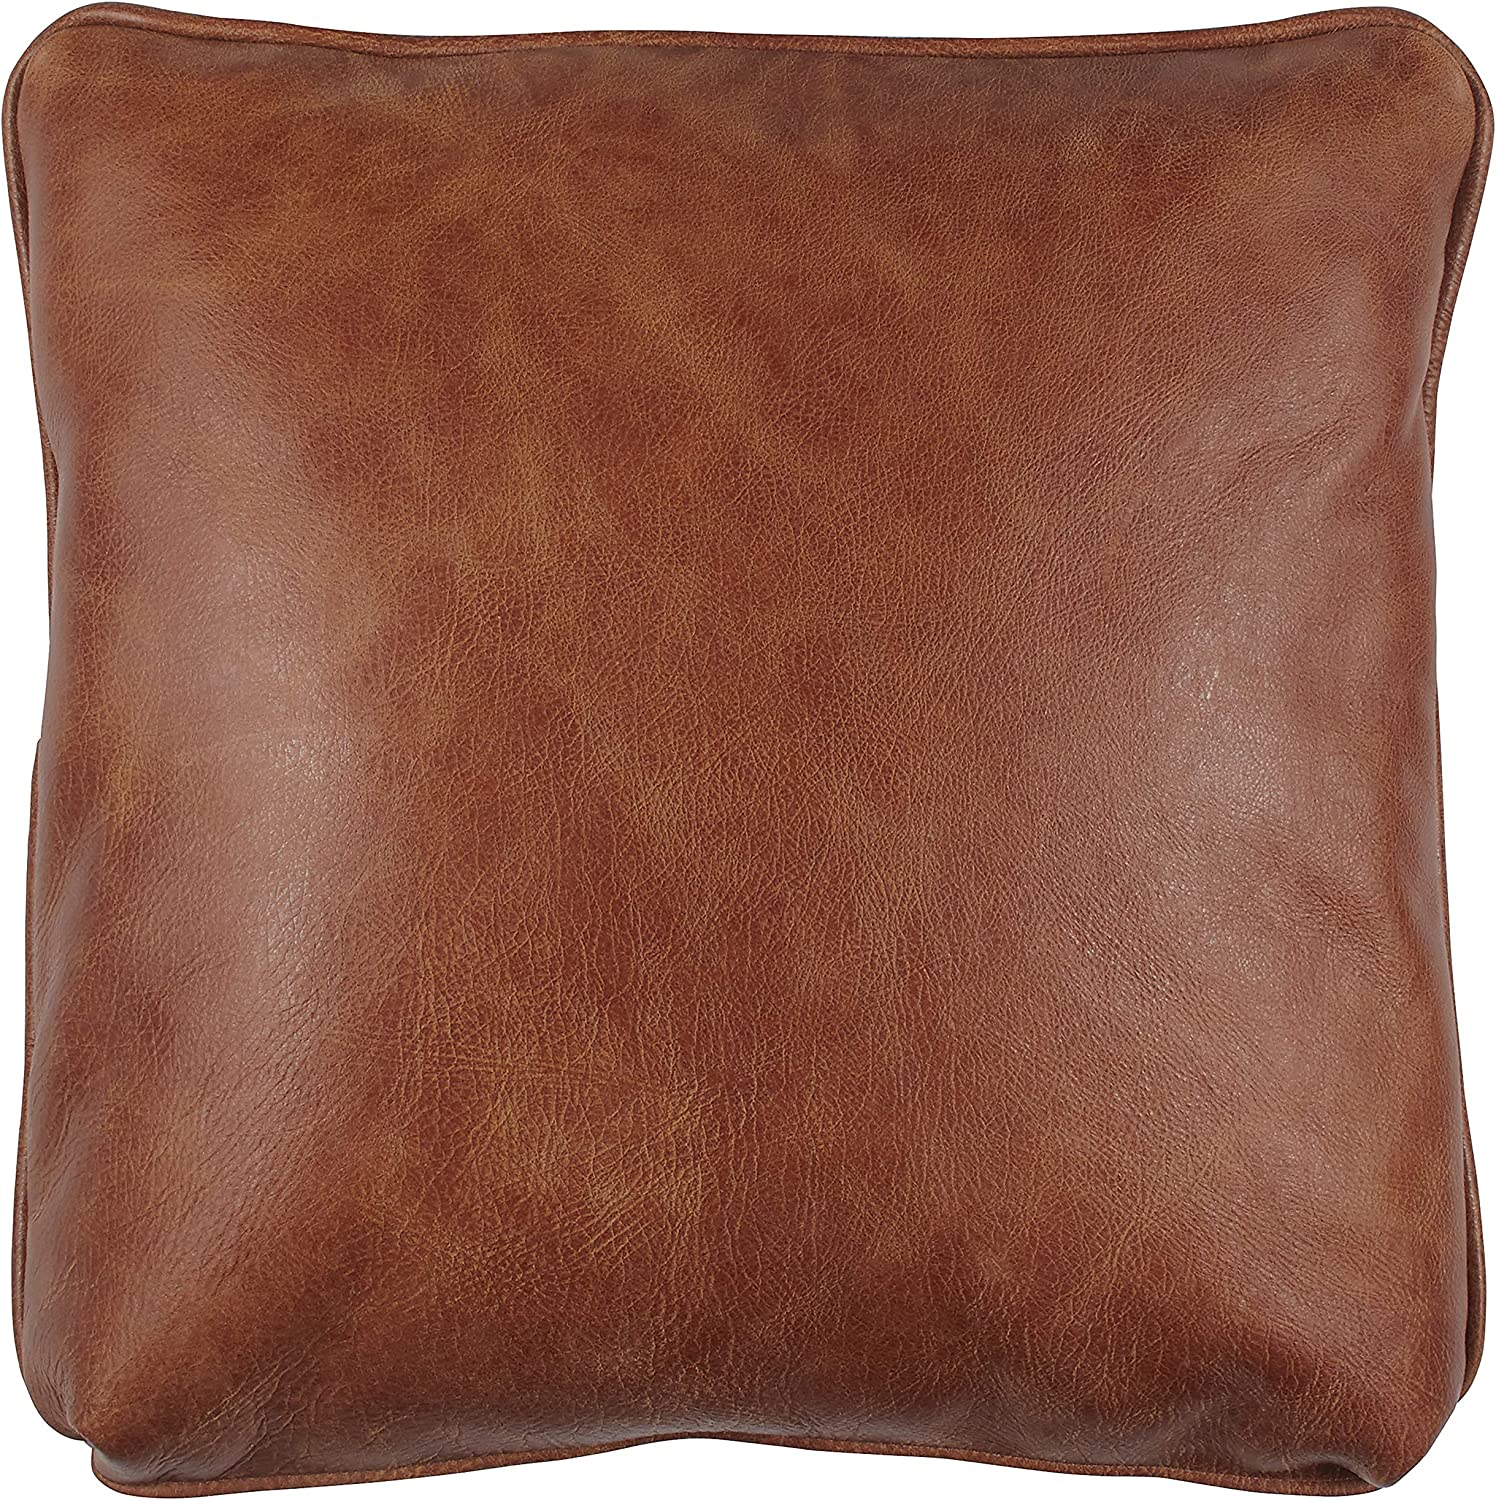 Stone & Beam Rustic 100% Top Grain Leather Pillow, 19 , Badlands Saddle